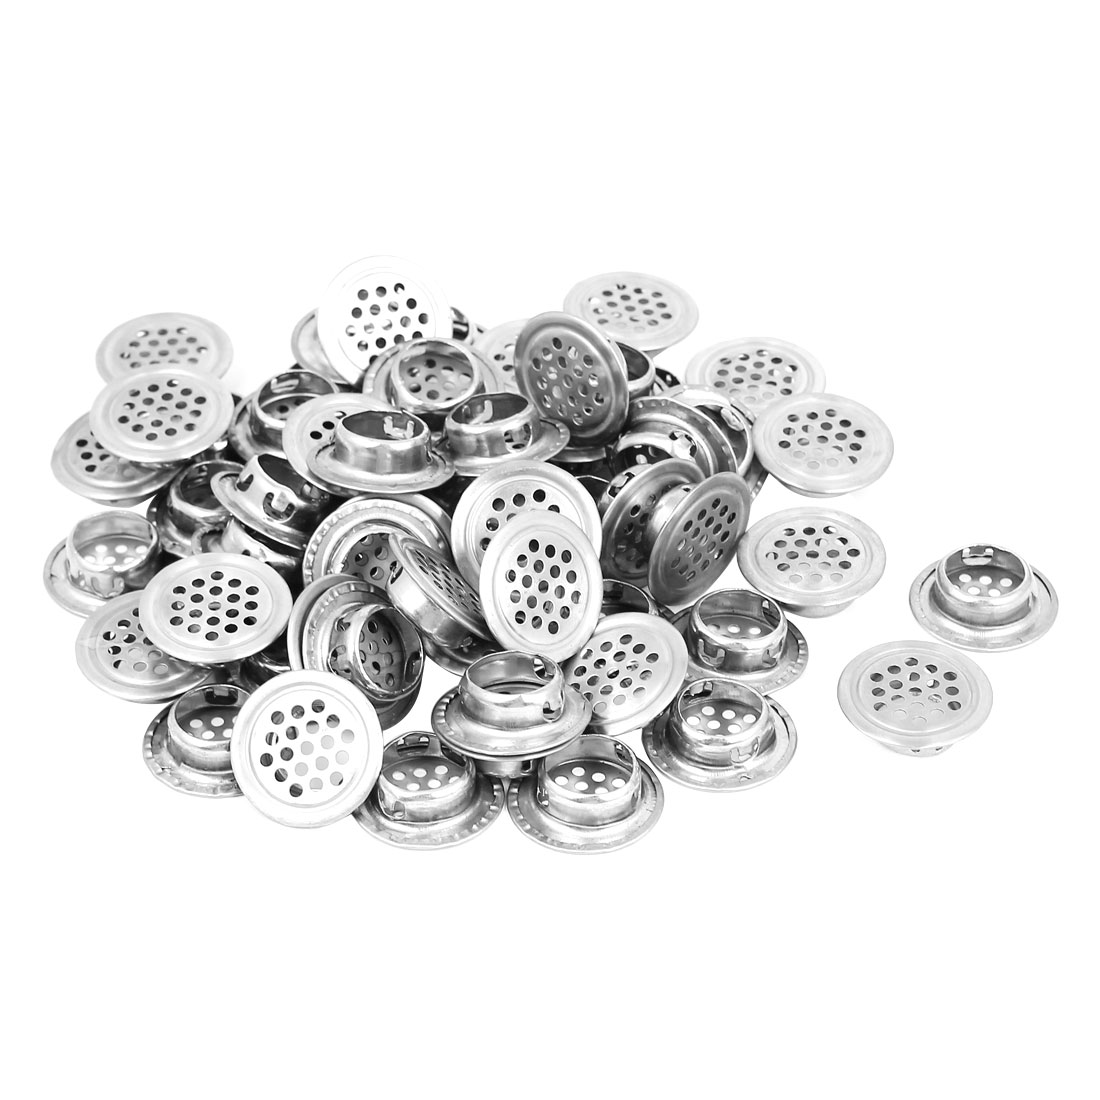 100pcs Metal 19mm Bottom Dia Perforated Round Mesh Air Vents Ventilation Louvers